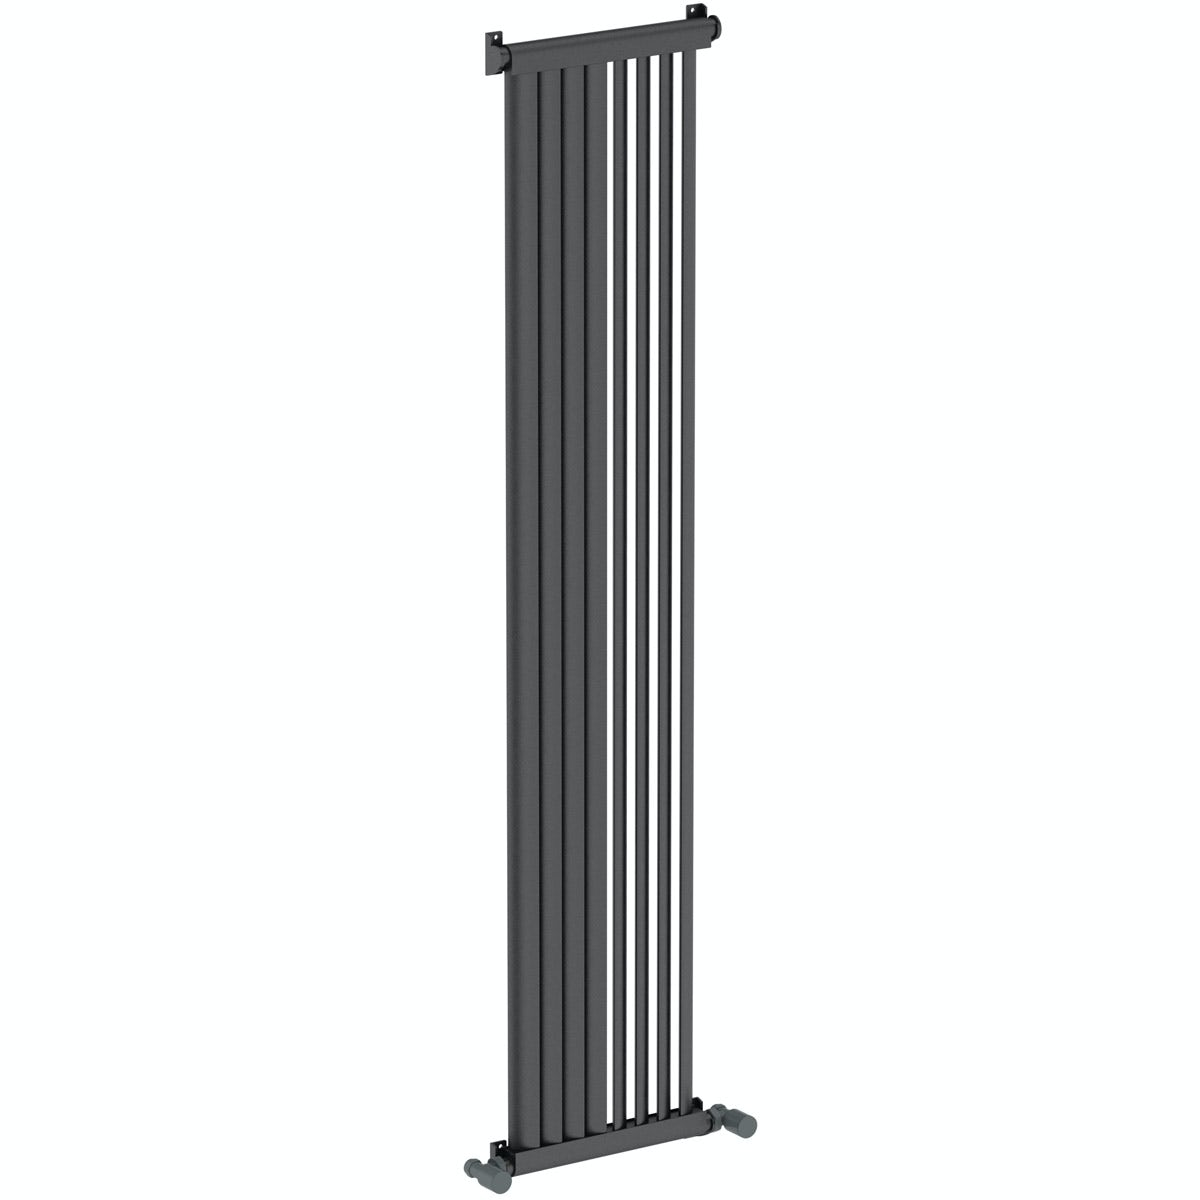 Mode Zephyra anthracite vertical radiator 1500 x 328